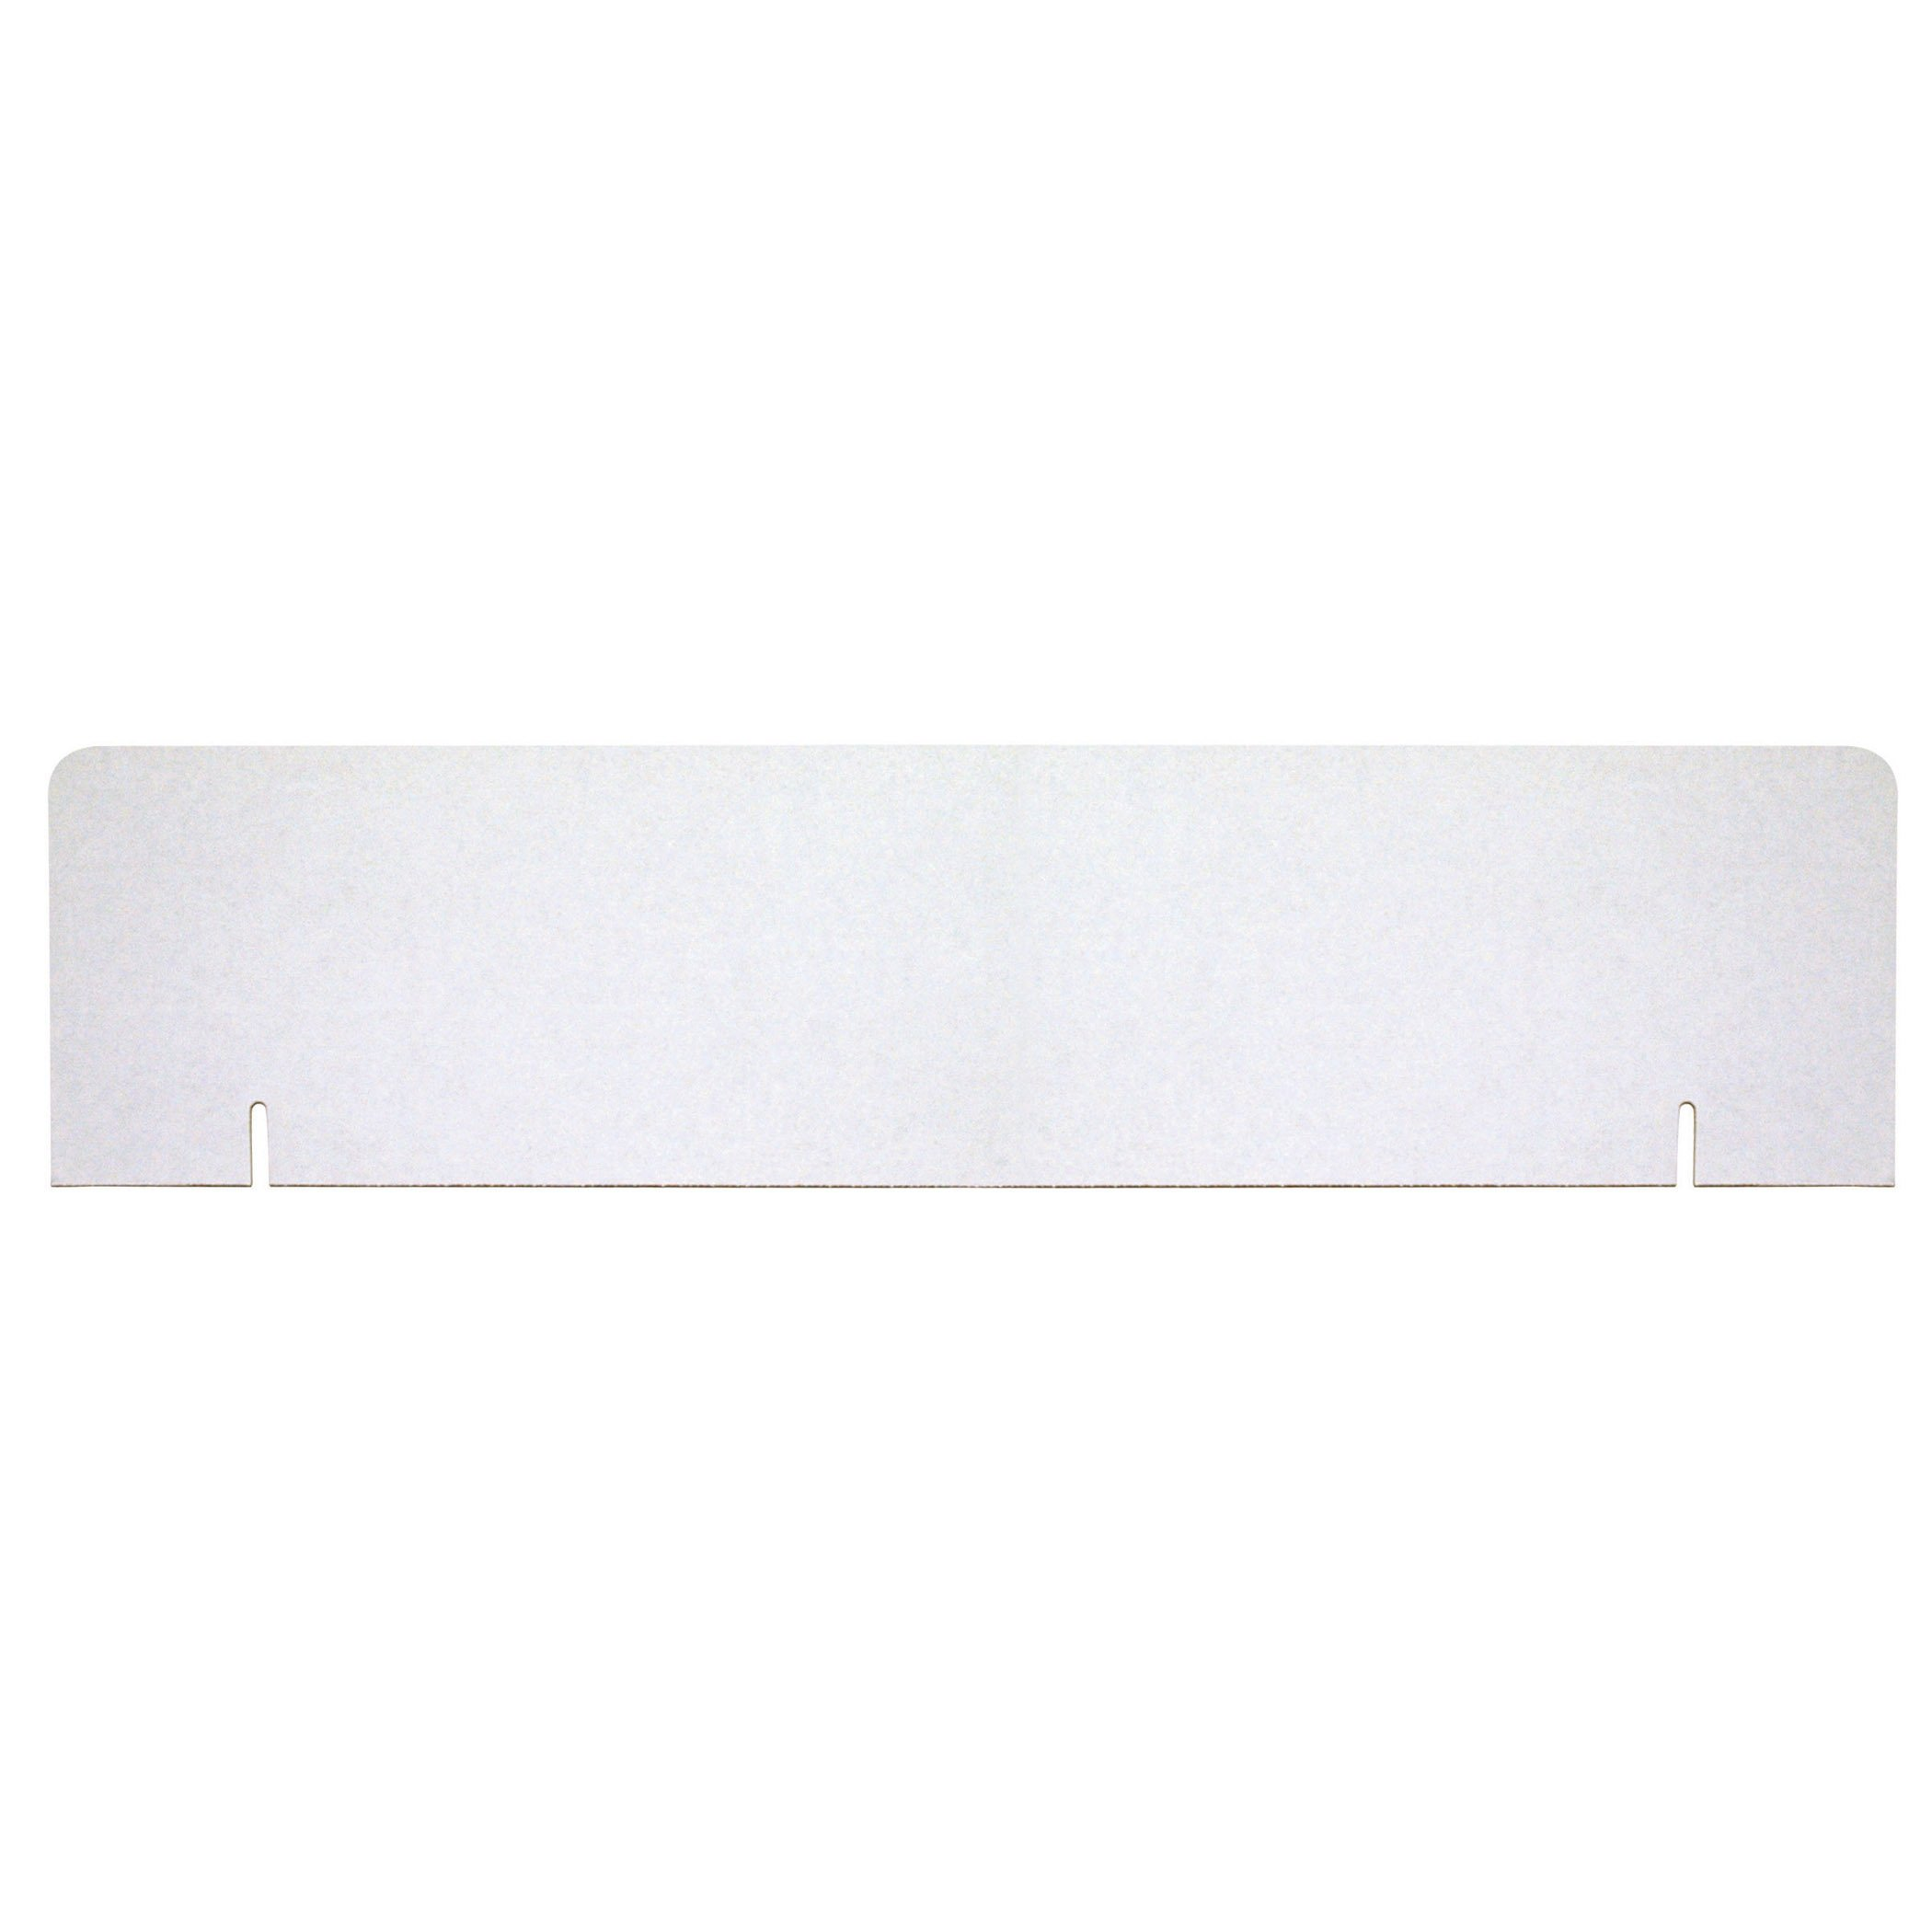 Pacon Presentation Board Header, 36''X9 1/2'', White, 24 Headers by PACON